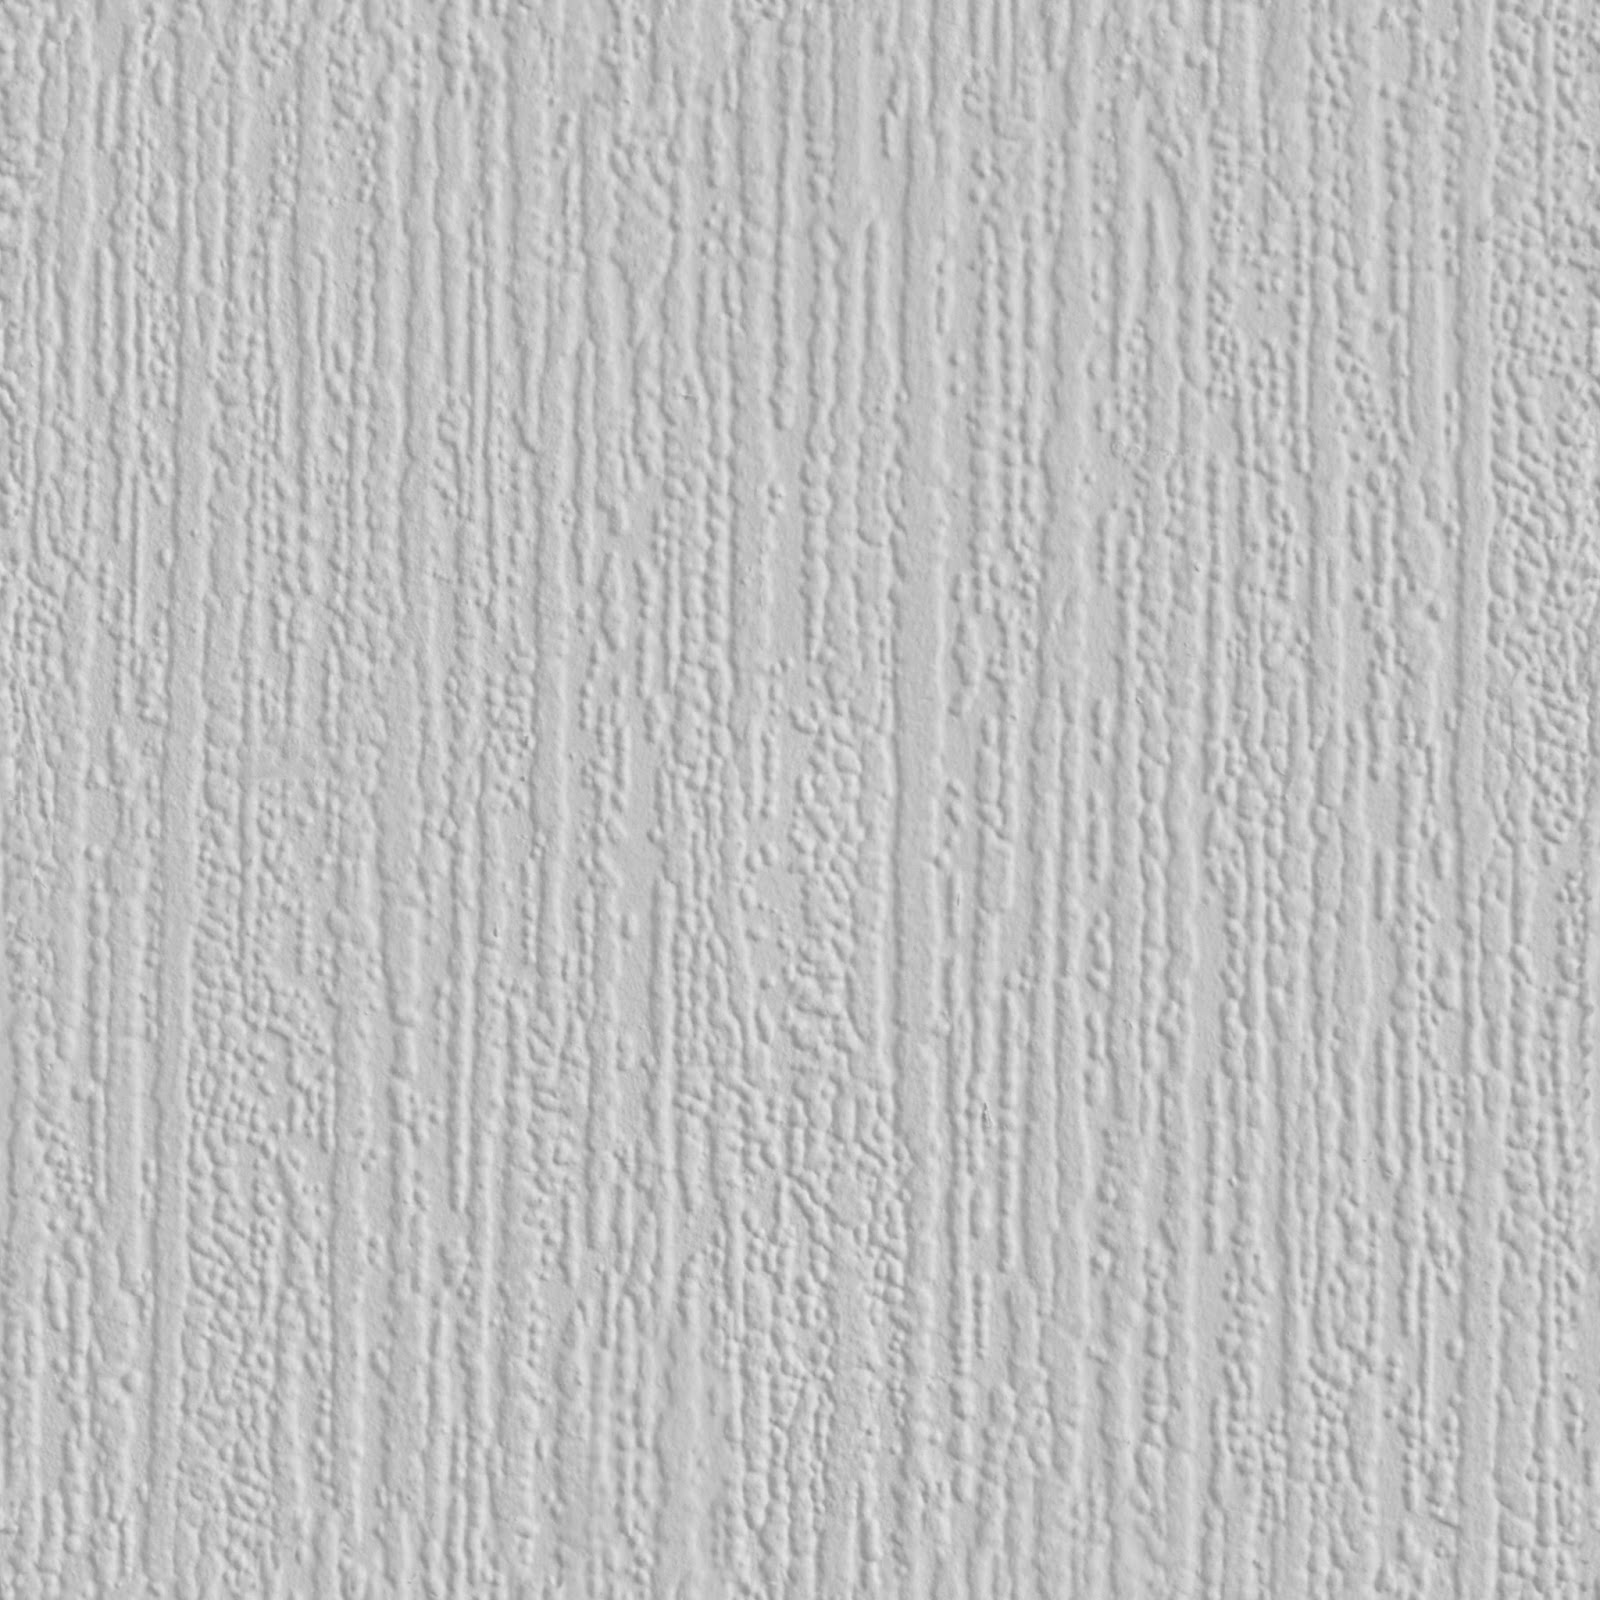 Stucco 3 White Plaster Wall Paper Texture